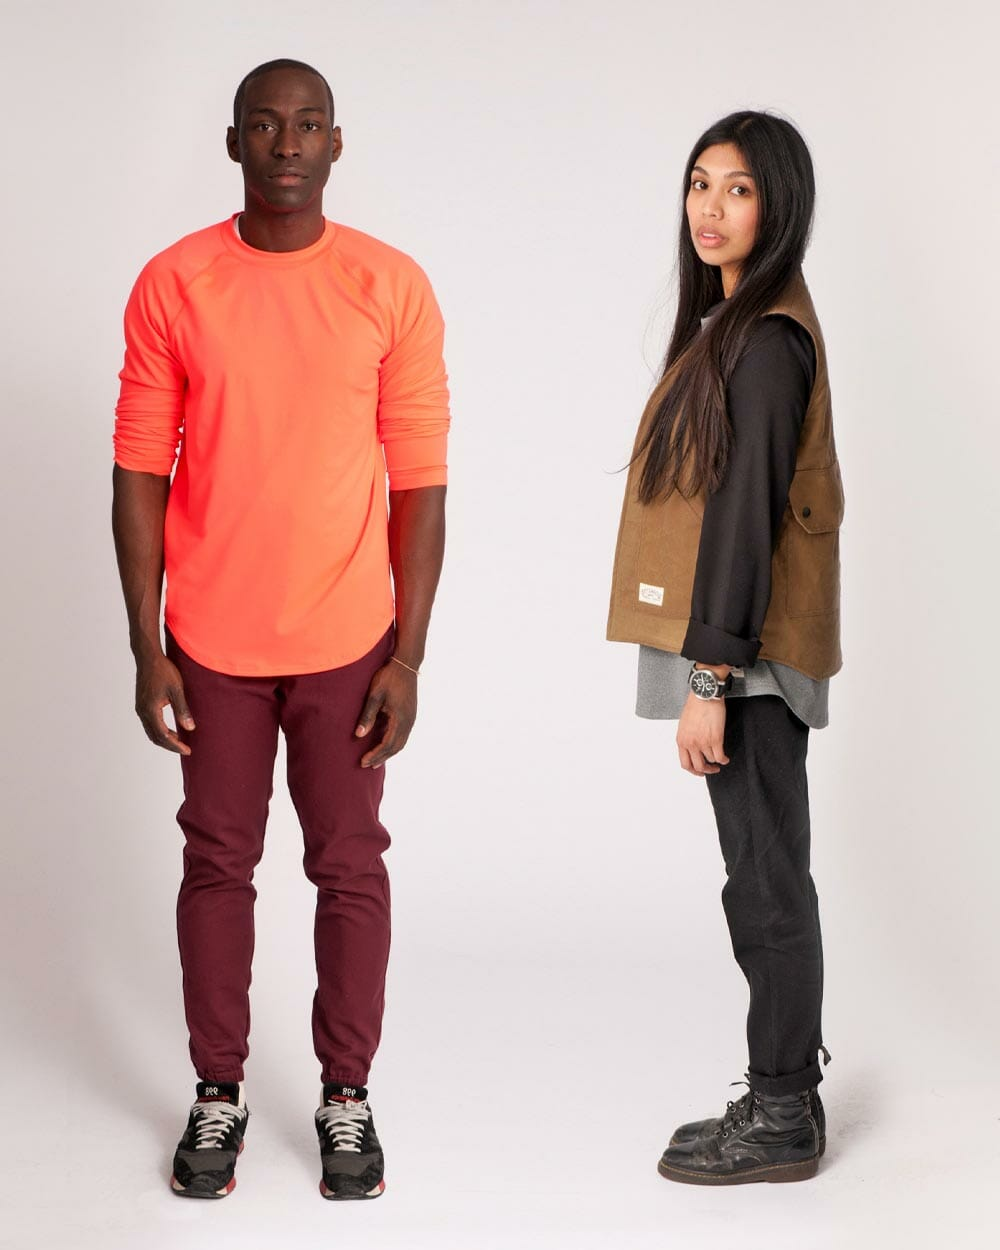 Muttonhead Canada Androgynous clothing